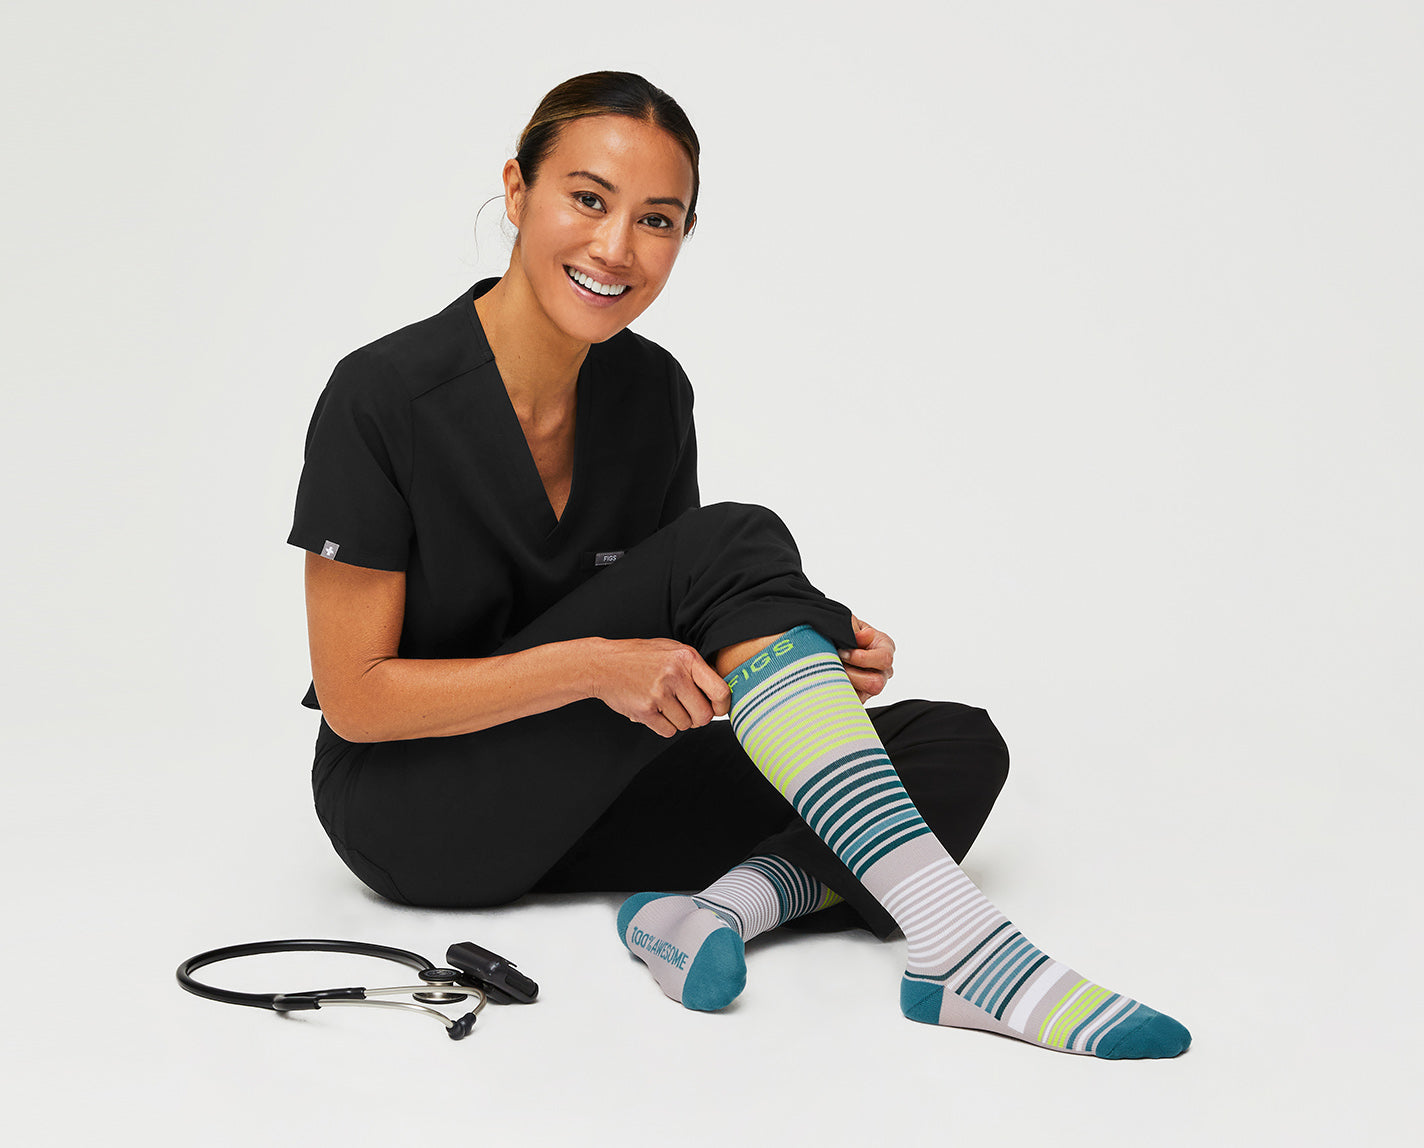 We couldn't stop at just one set of stripes. 100% Awesome Compression Socks that are breathable and ridiculously soft.